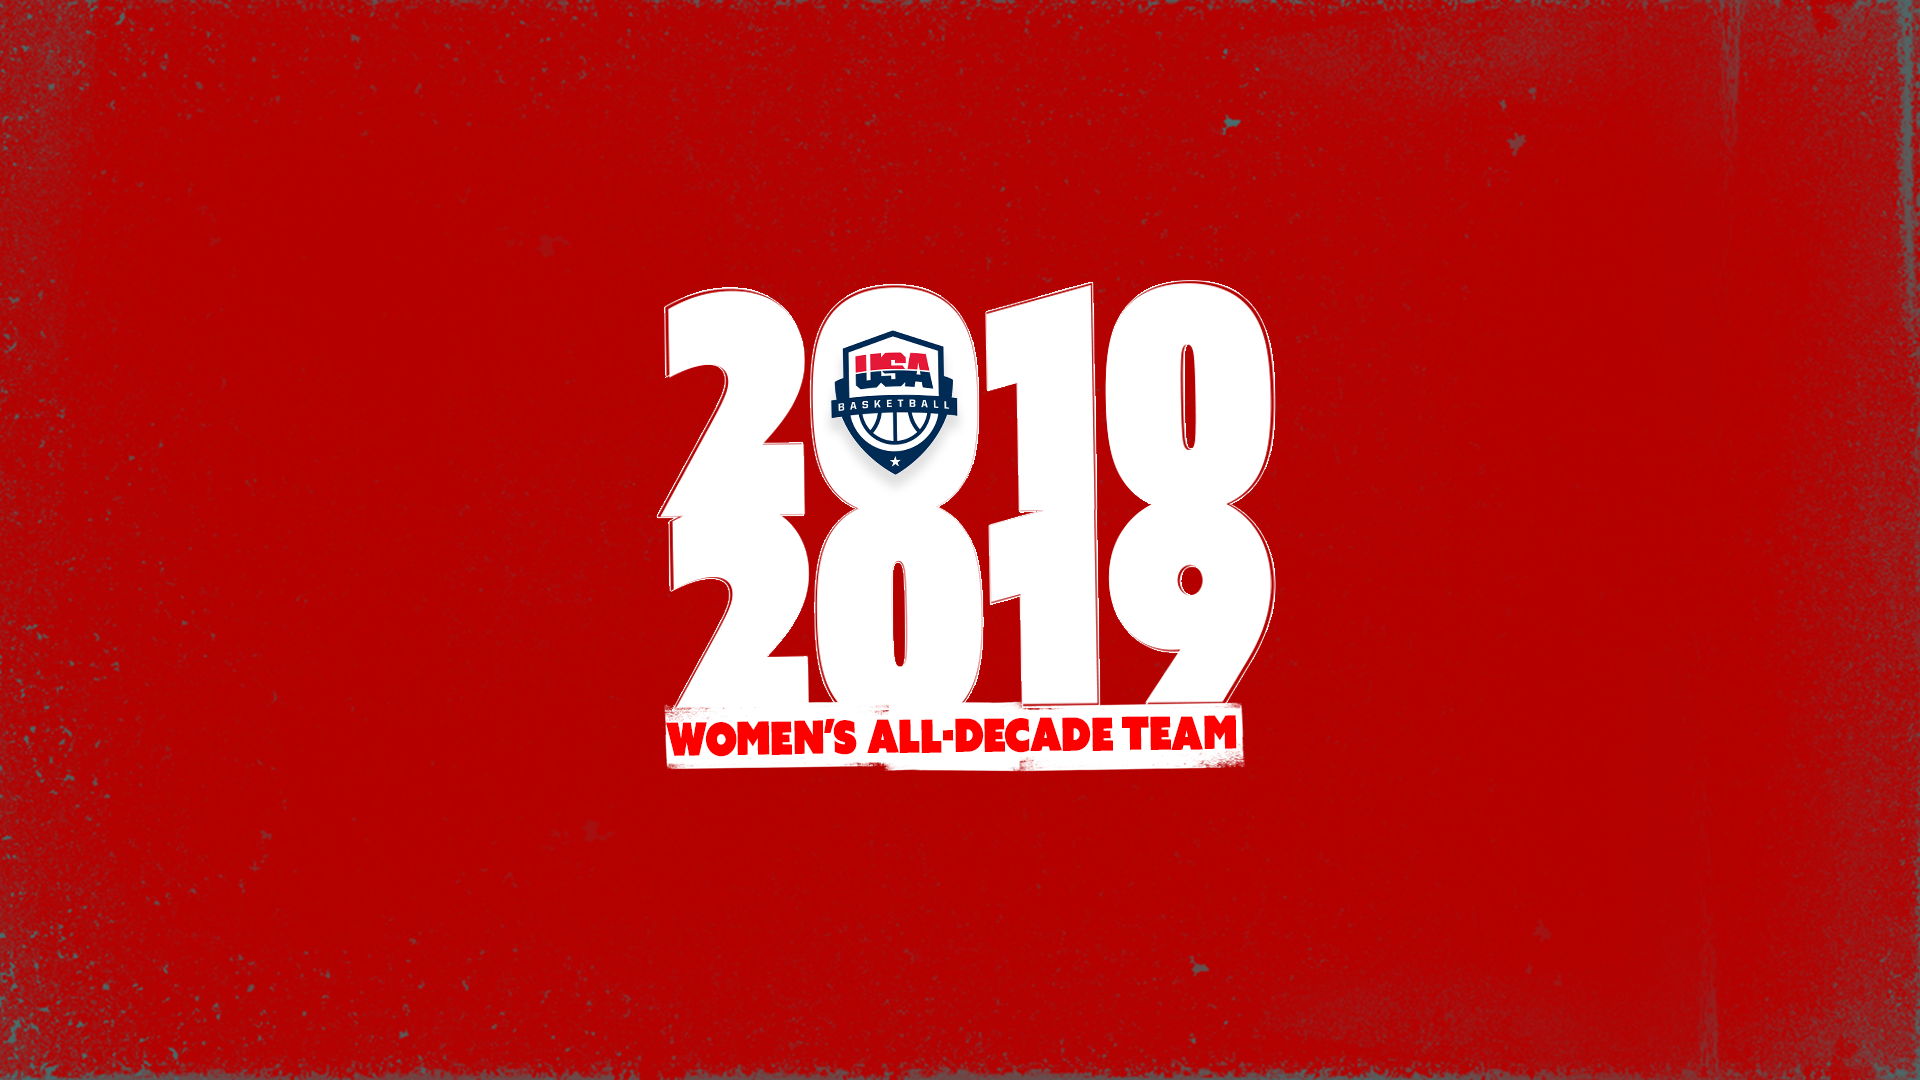 USA Women's All-Decade Team